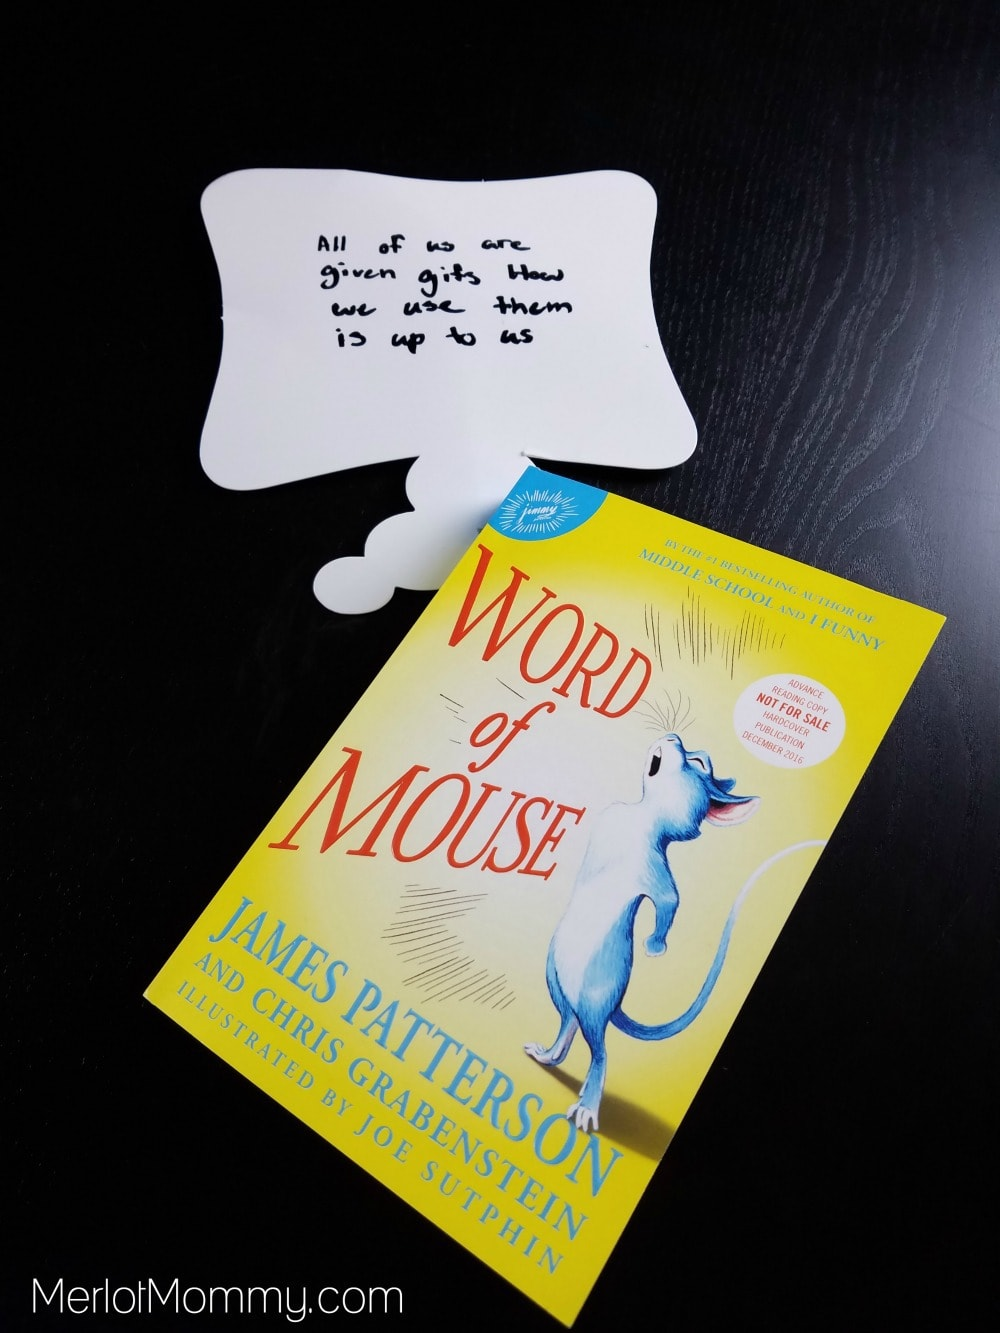 Word of Mouse by Jimmy Patterson